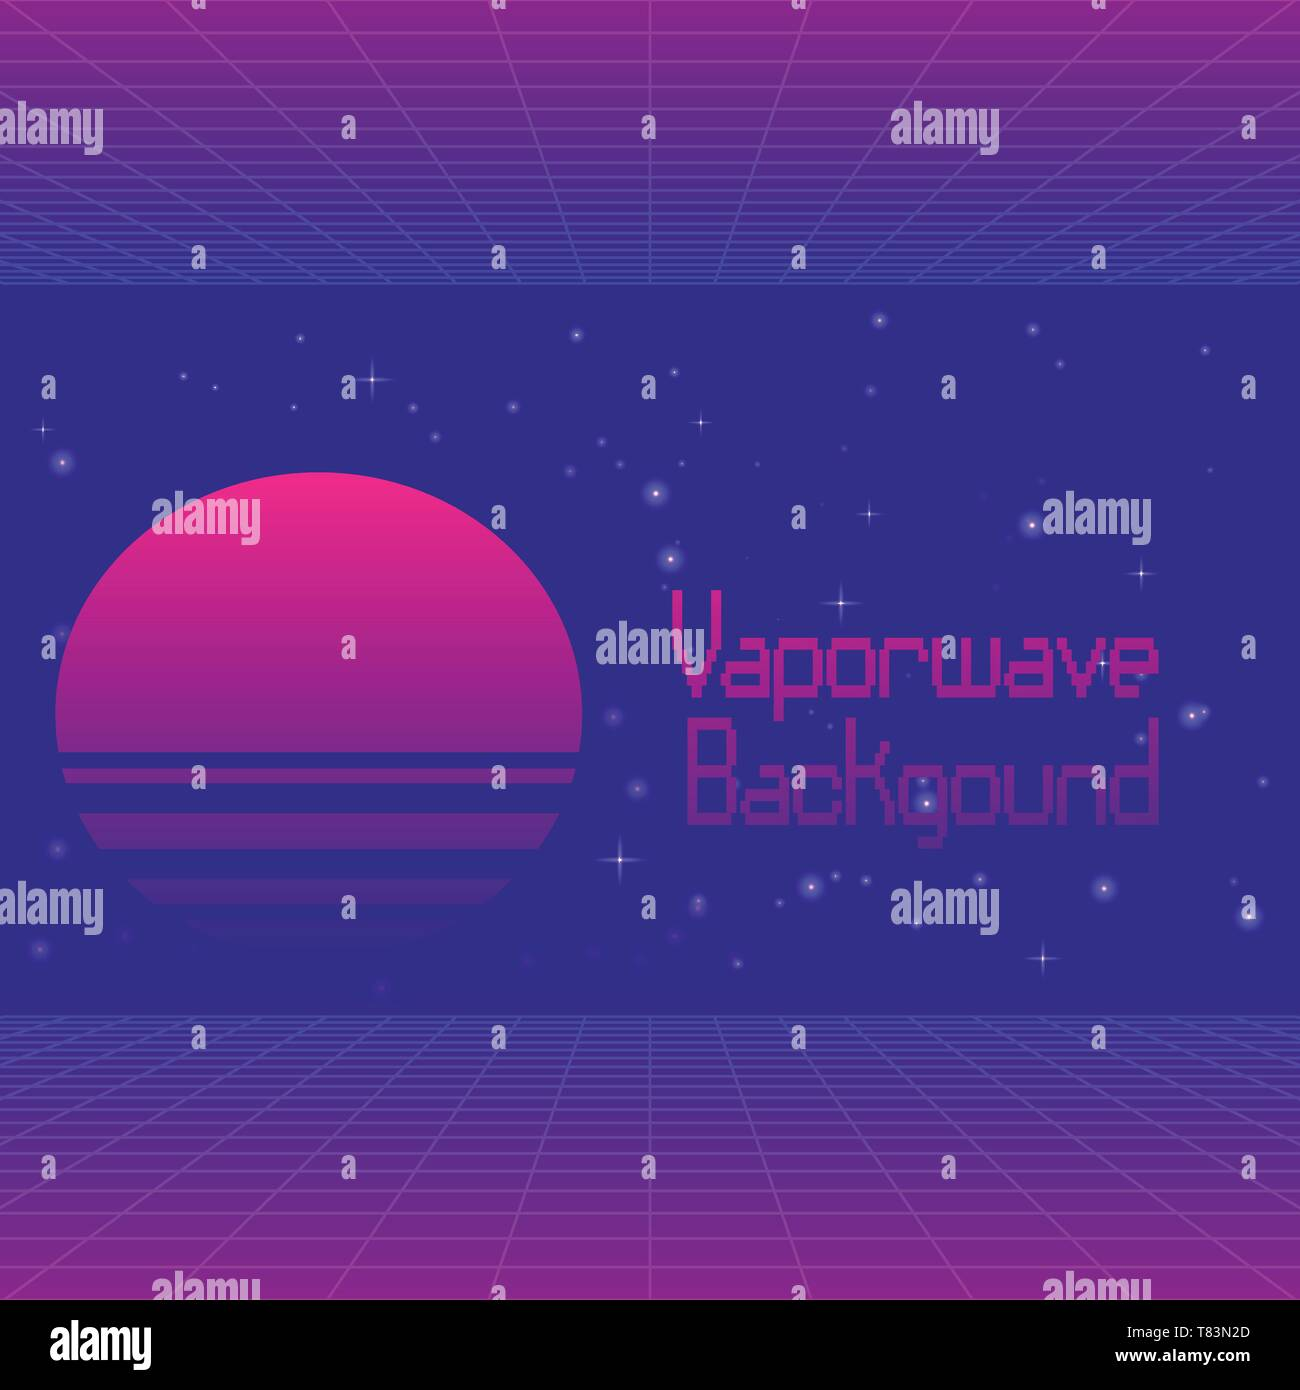 Futuristic Background With Digital Landscape Laser Grid And Text Vaporwave In English And Japanese Translation Trendy Neon Colors Retrowave Stock Vector Image Art Alamy